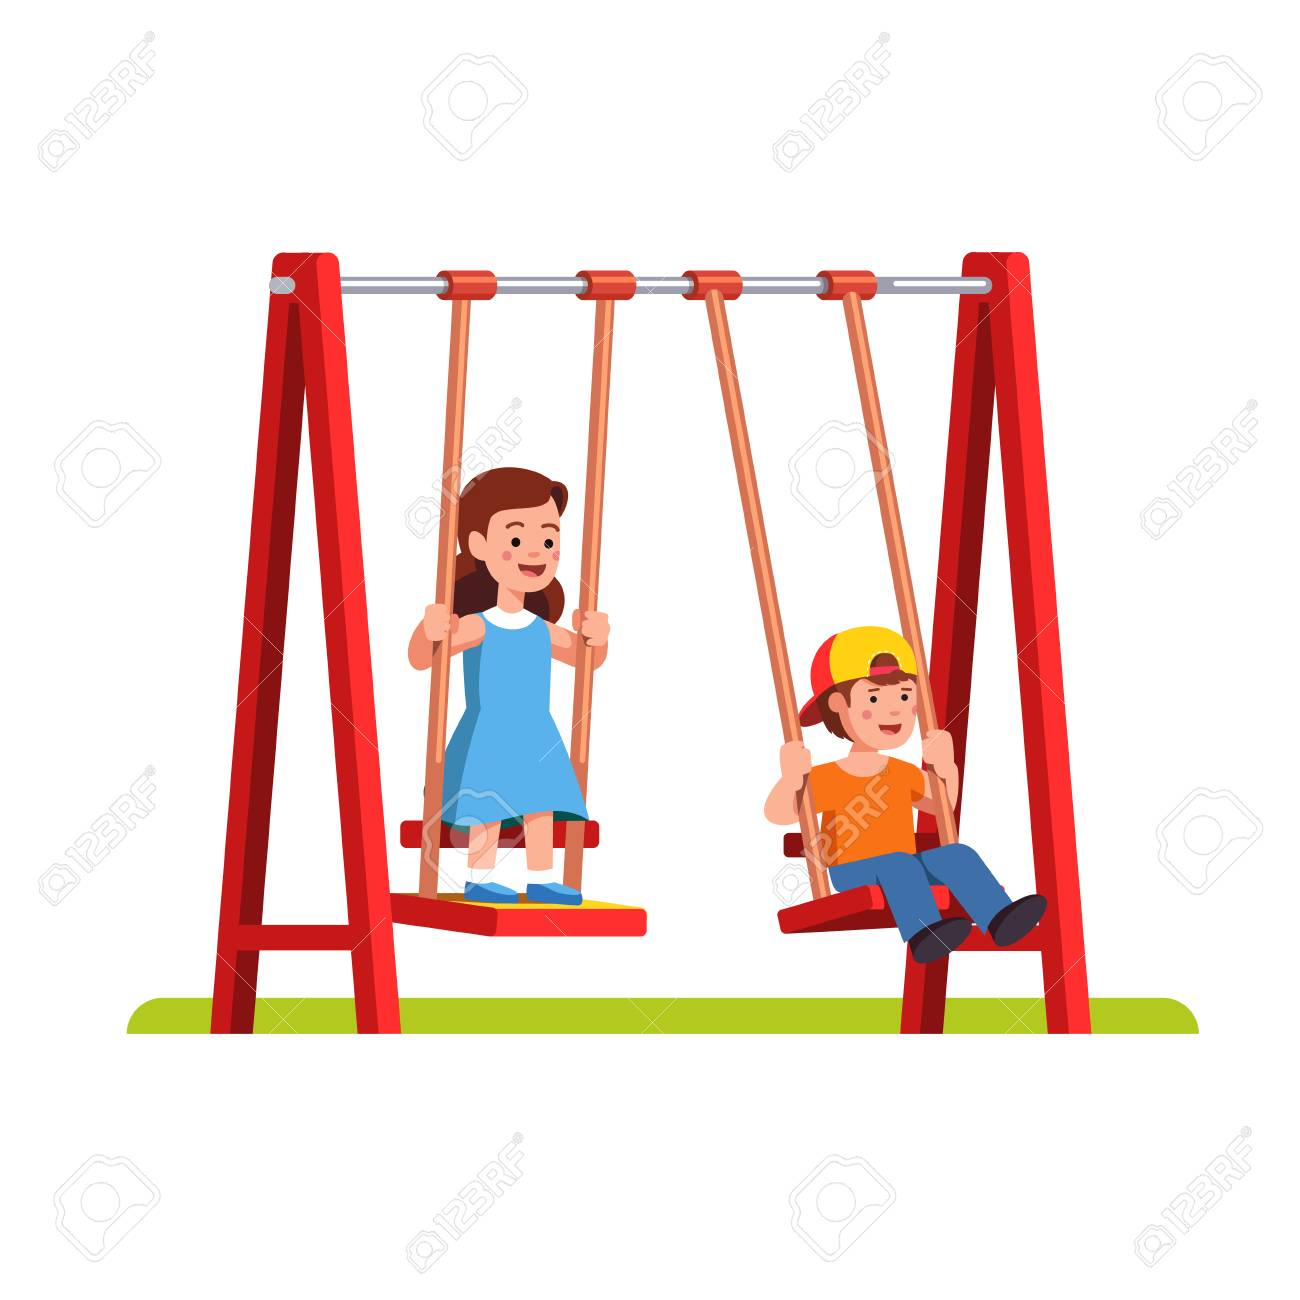 2281 Swing free clipart.